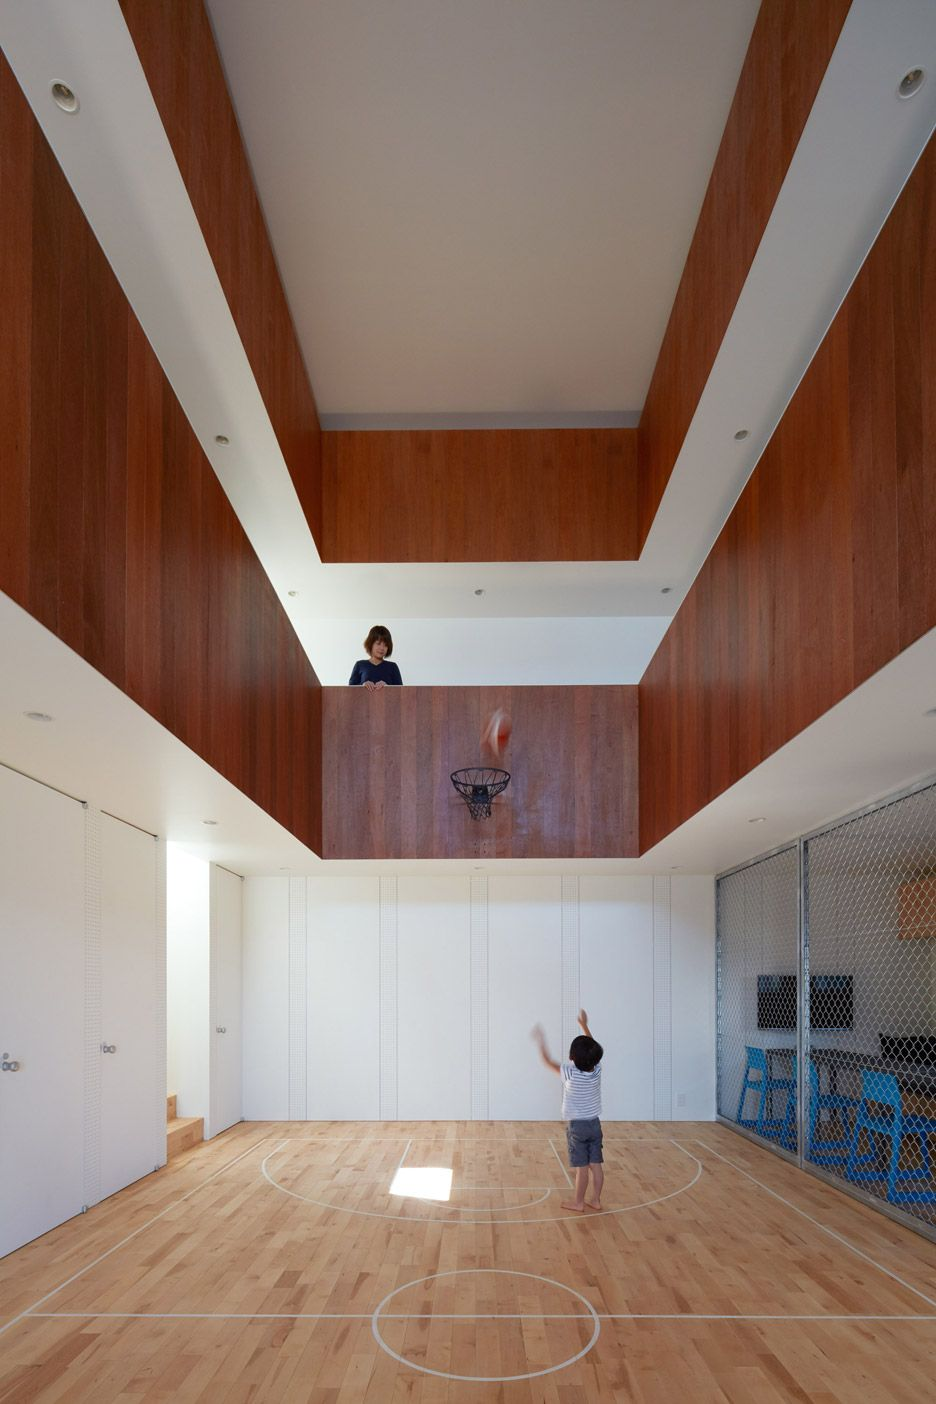 Koizumi sekkei designs house in japan with basketball for Indoor basketball court design